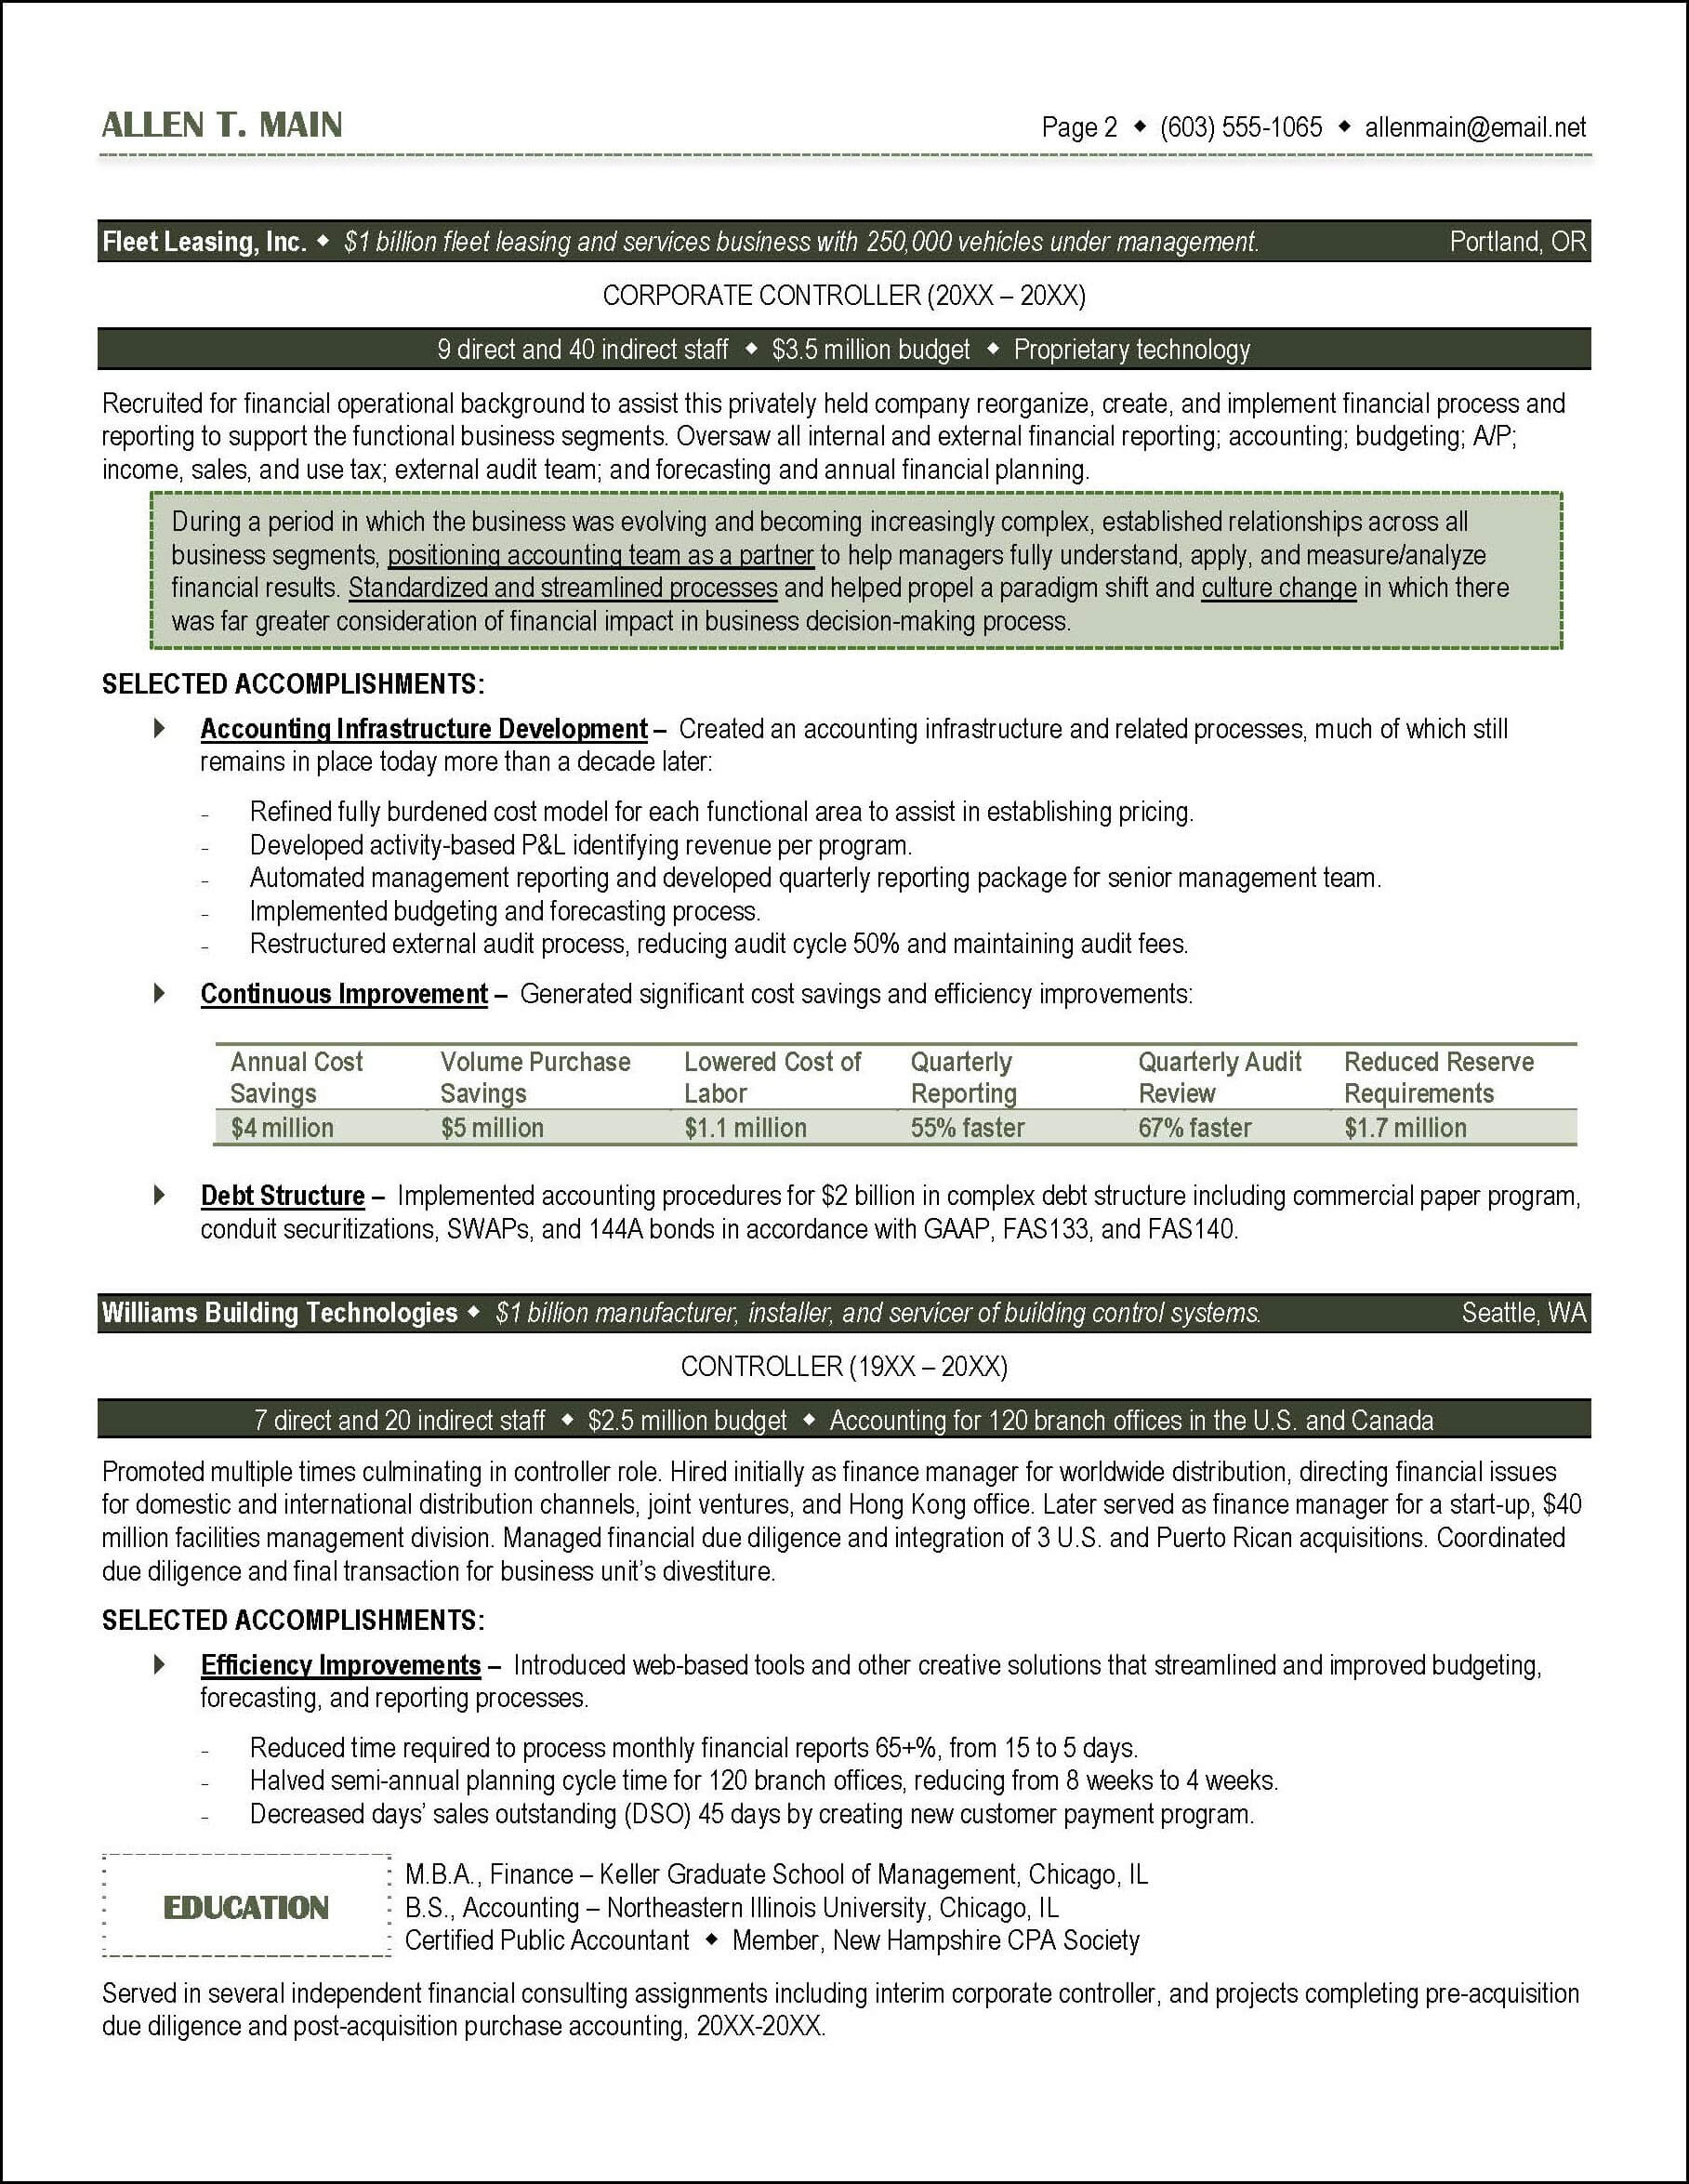 accounting resume example page 2 - Accounting Resumes Samples